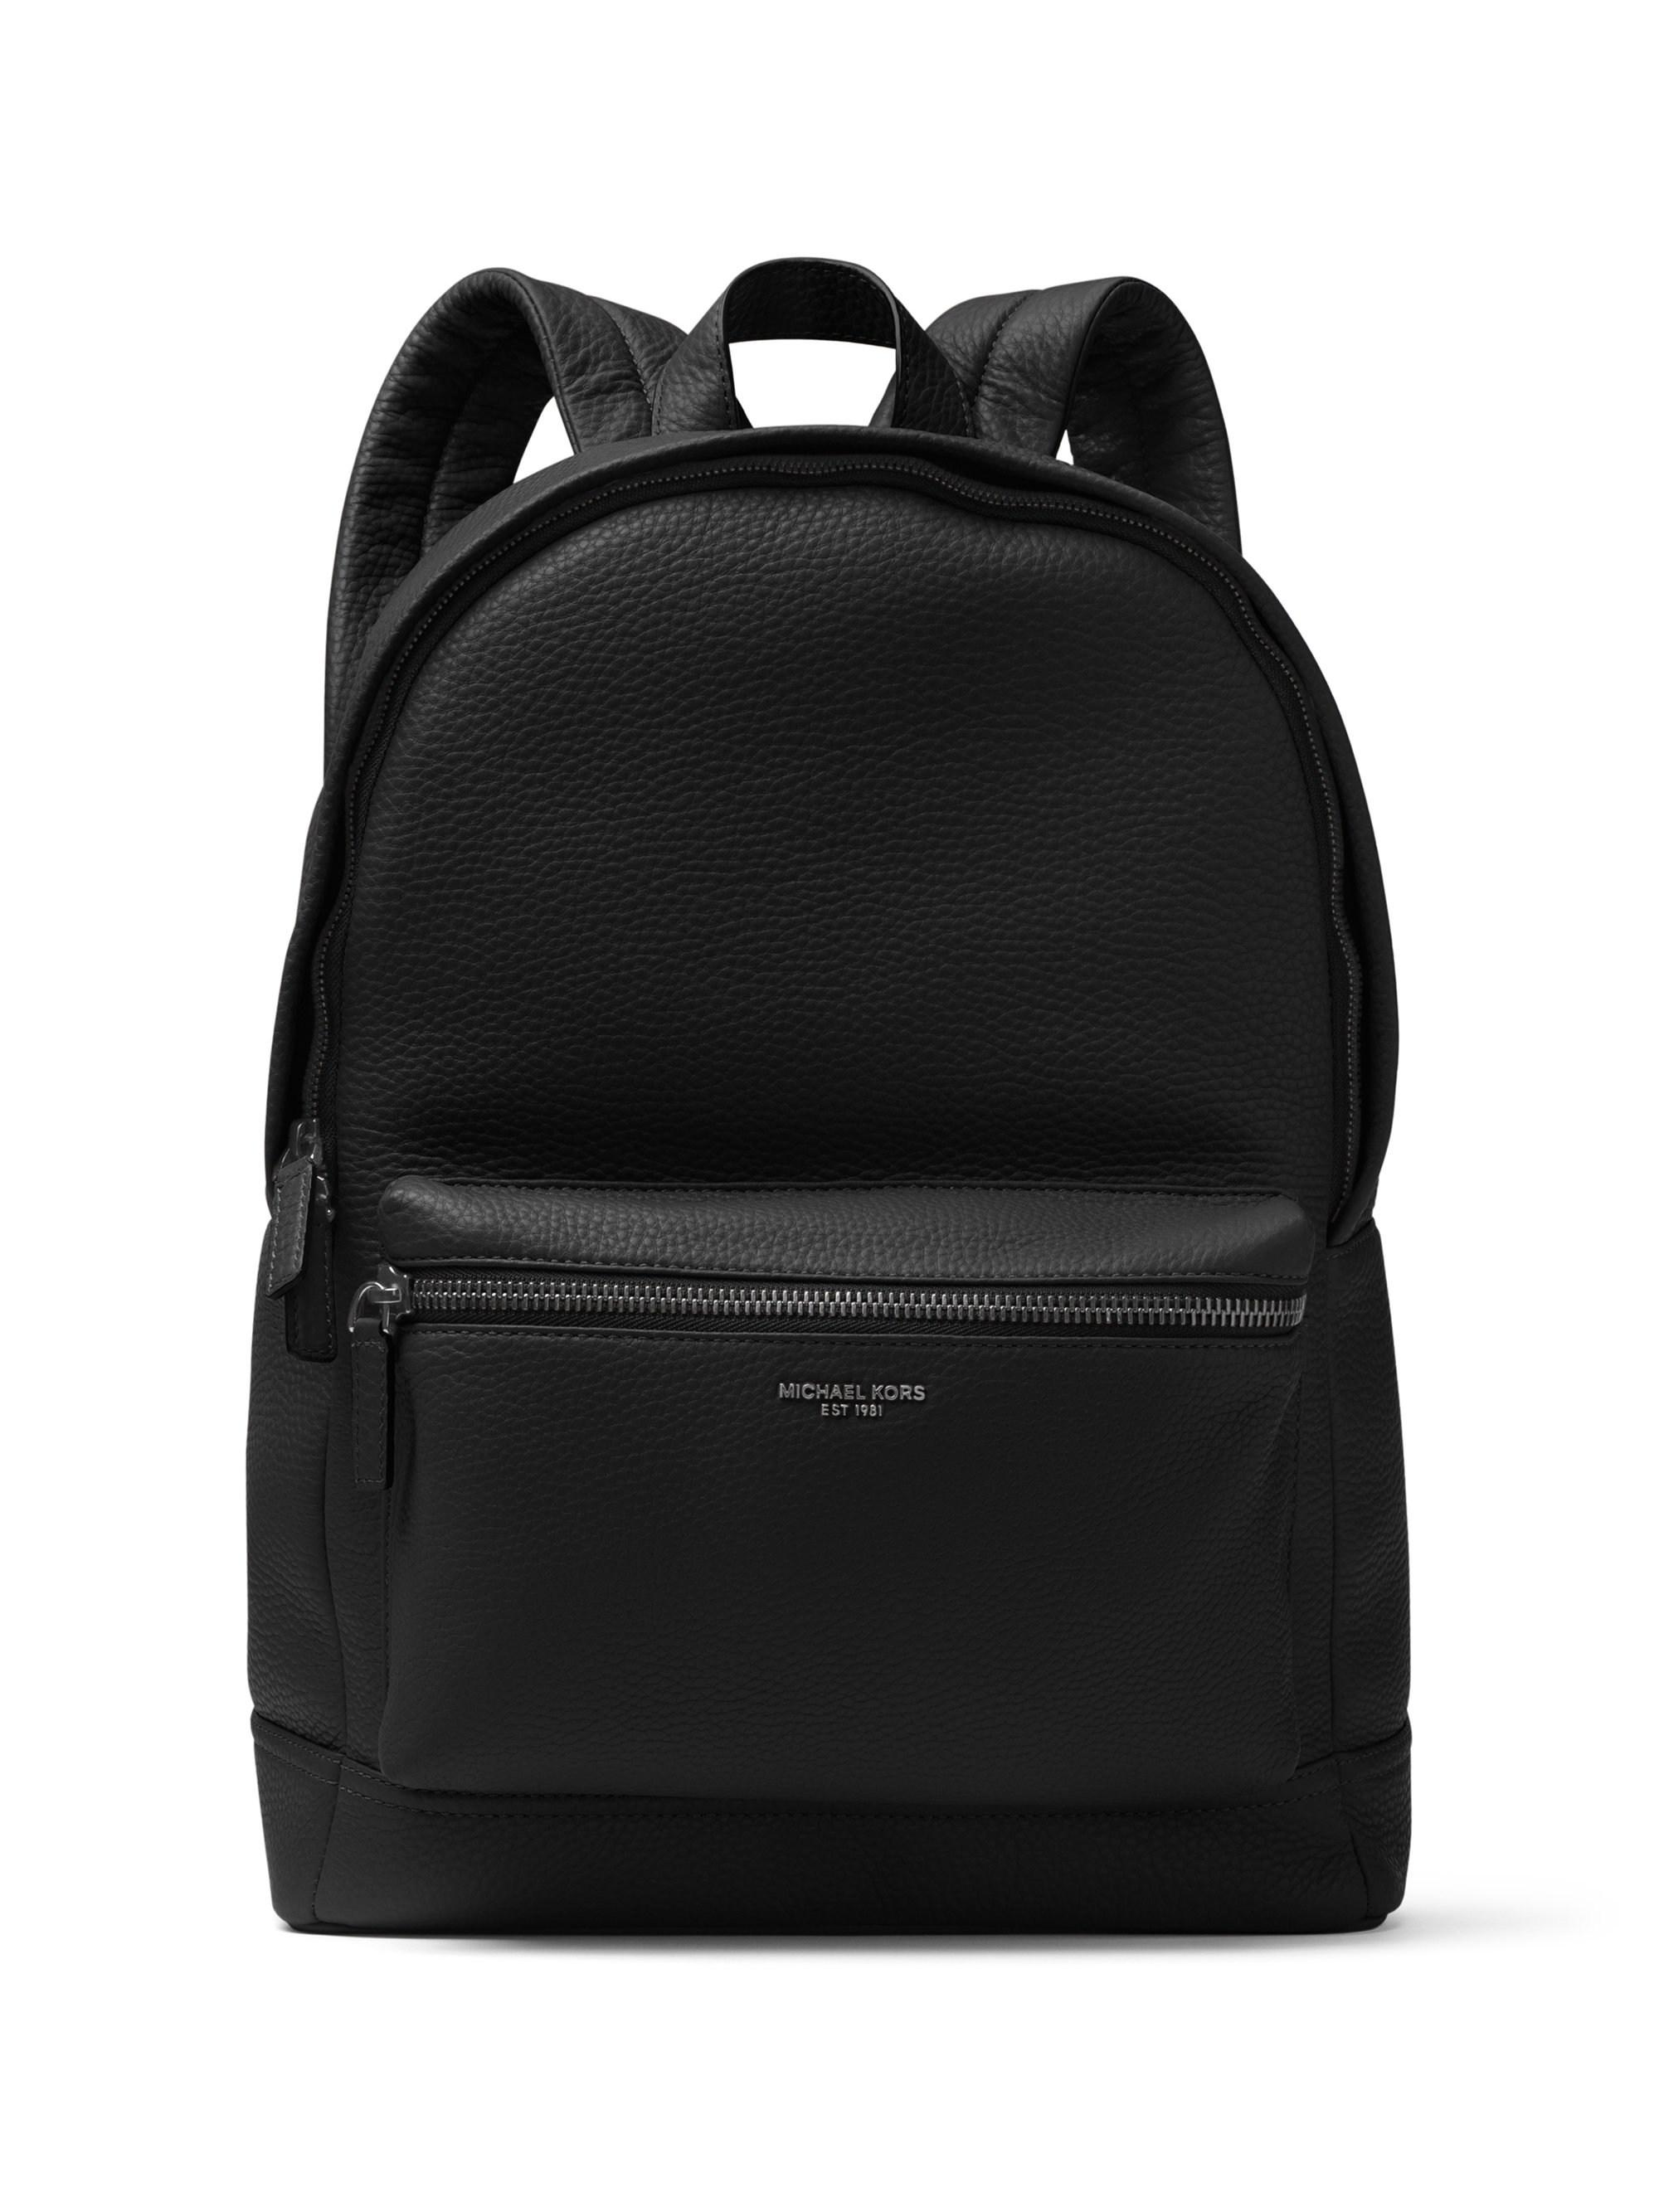 665d804c0d76 Michael Kors. Black Men's Bryant Pebble-textured Leather Backpack ...